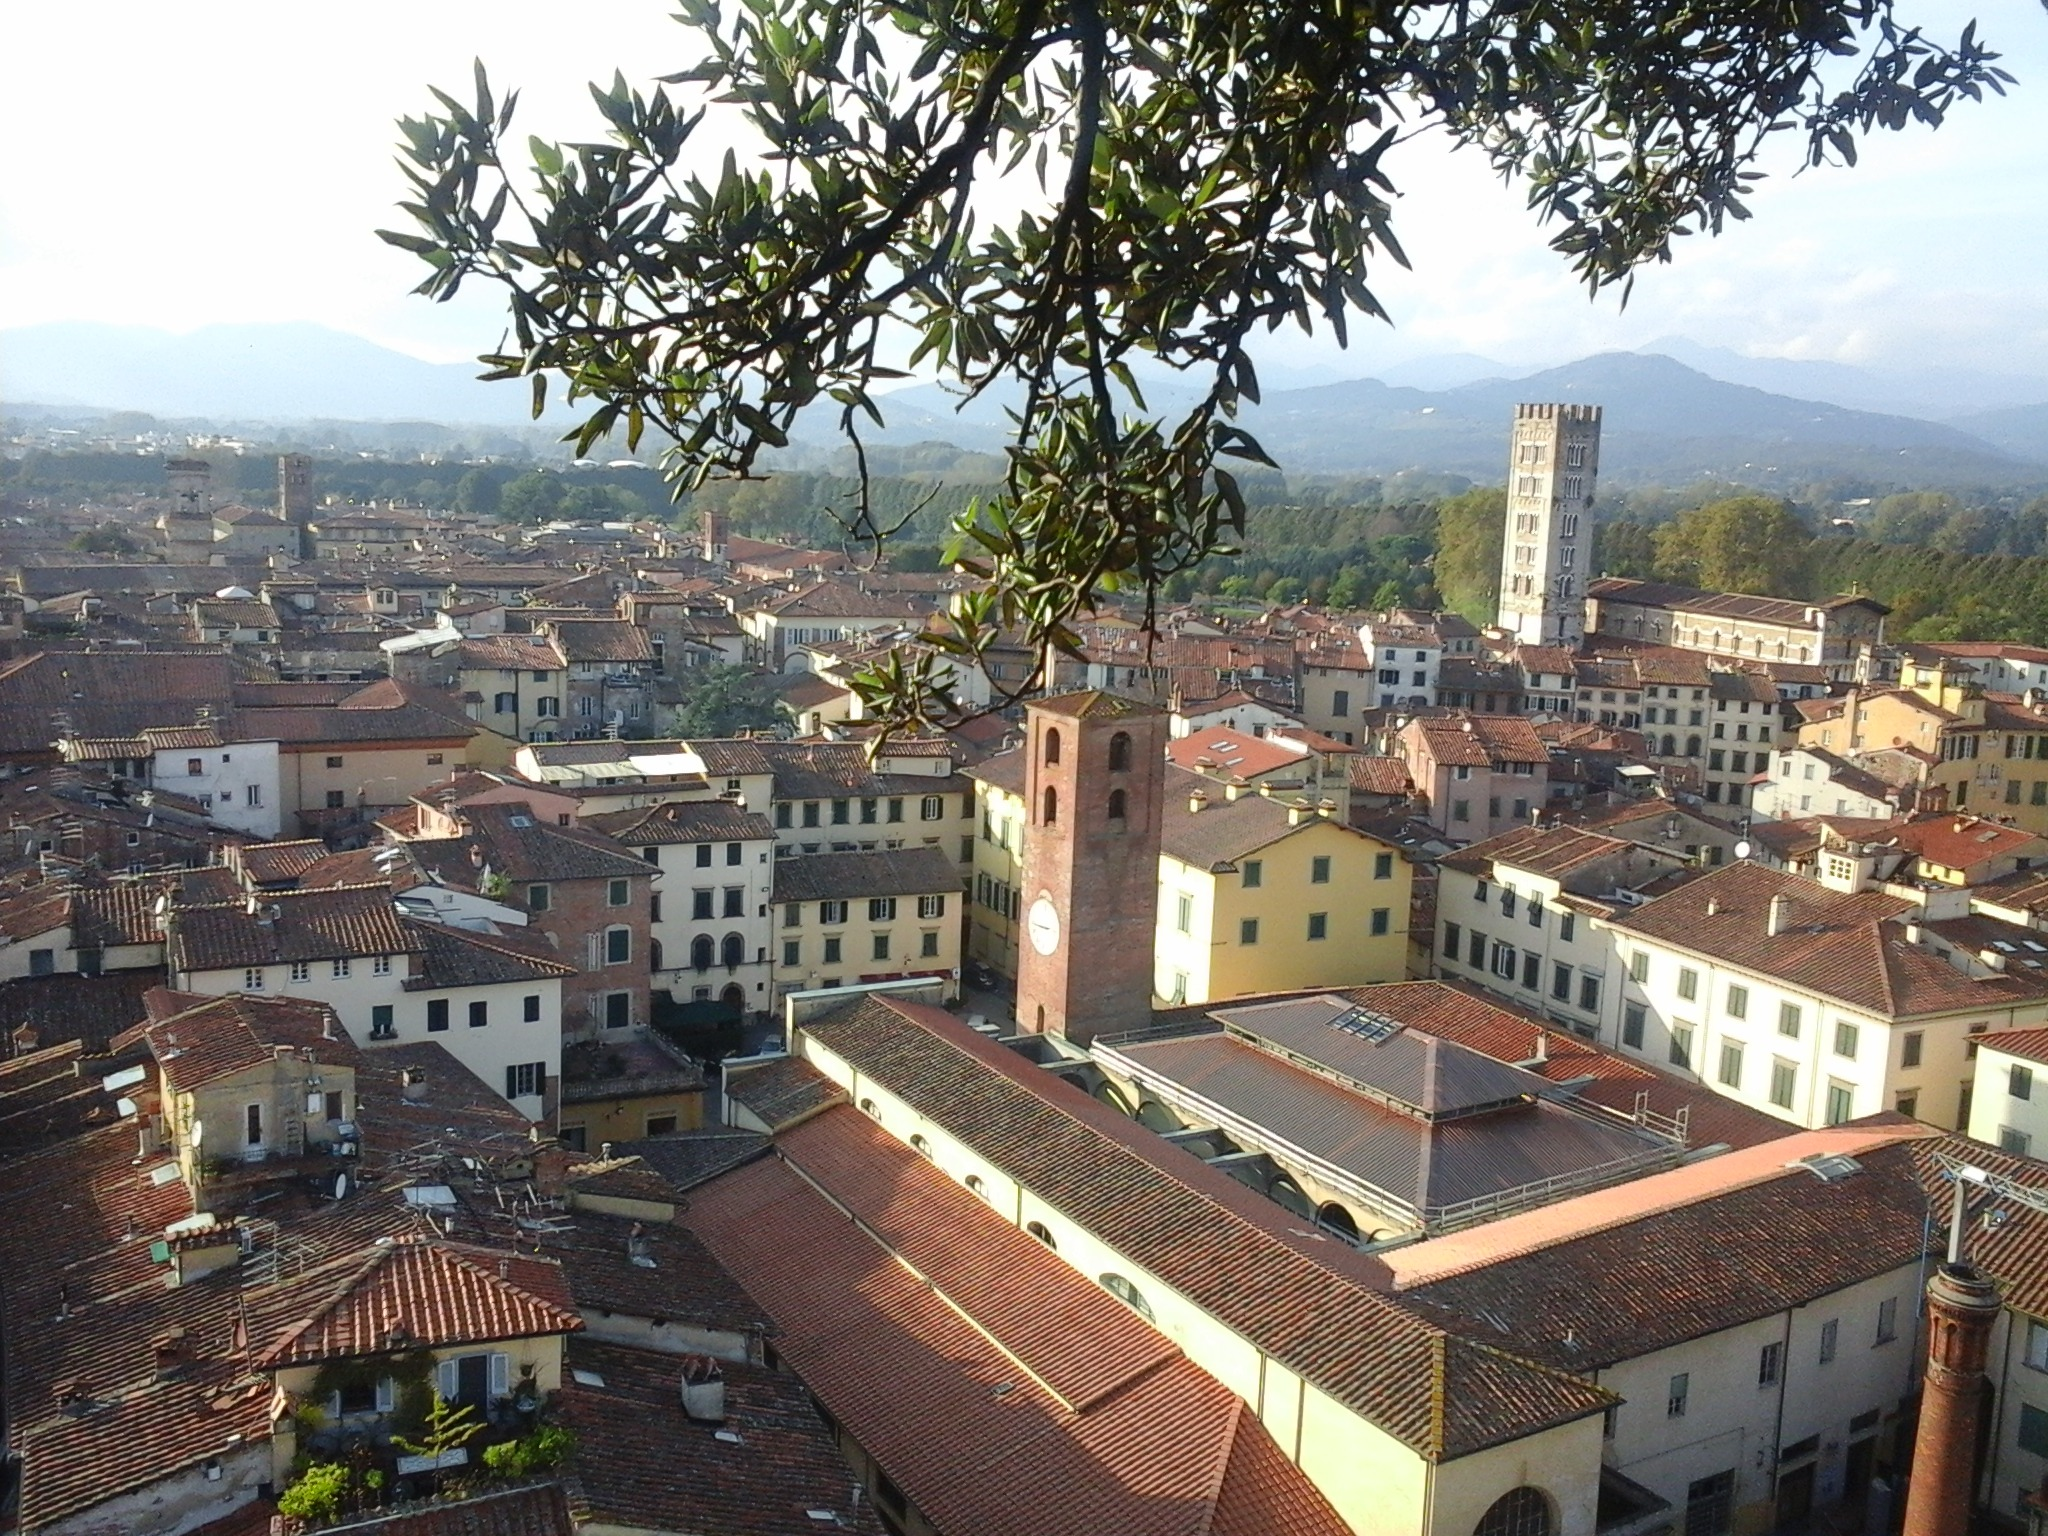 overlooking the rooftops of Lucca